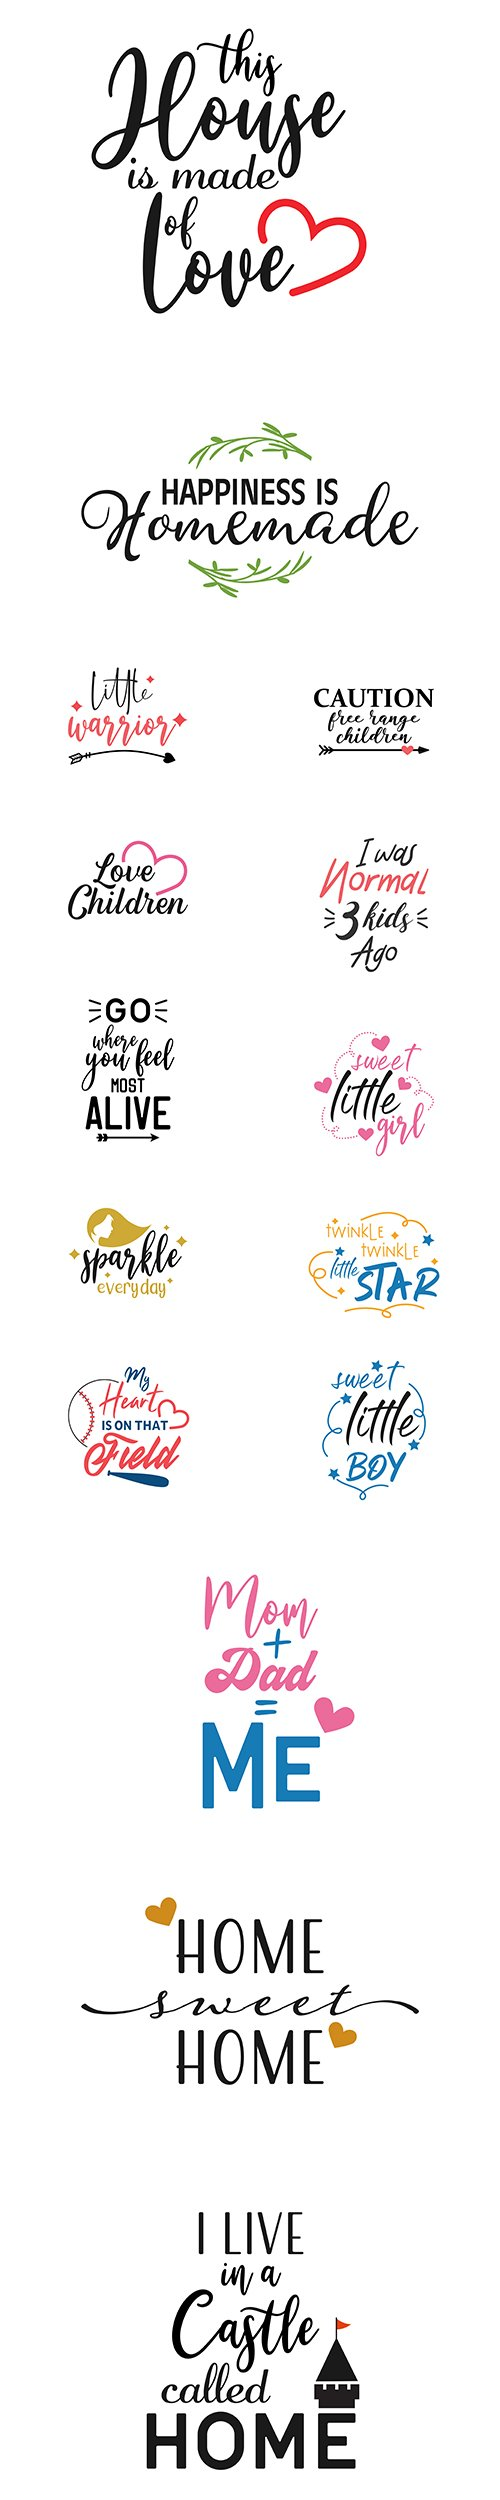 Home, Child and other Quote Lettering Typography Set